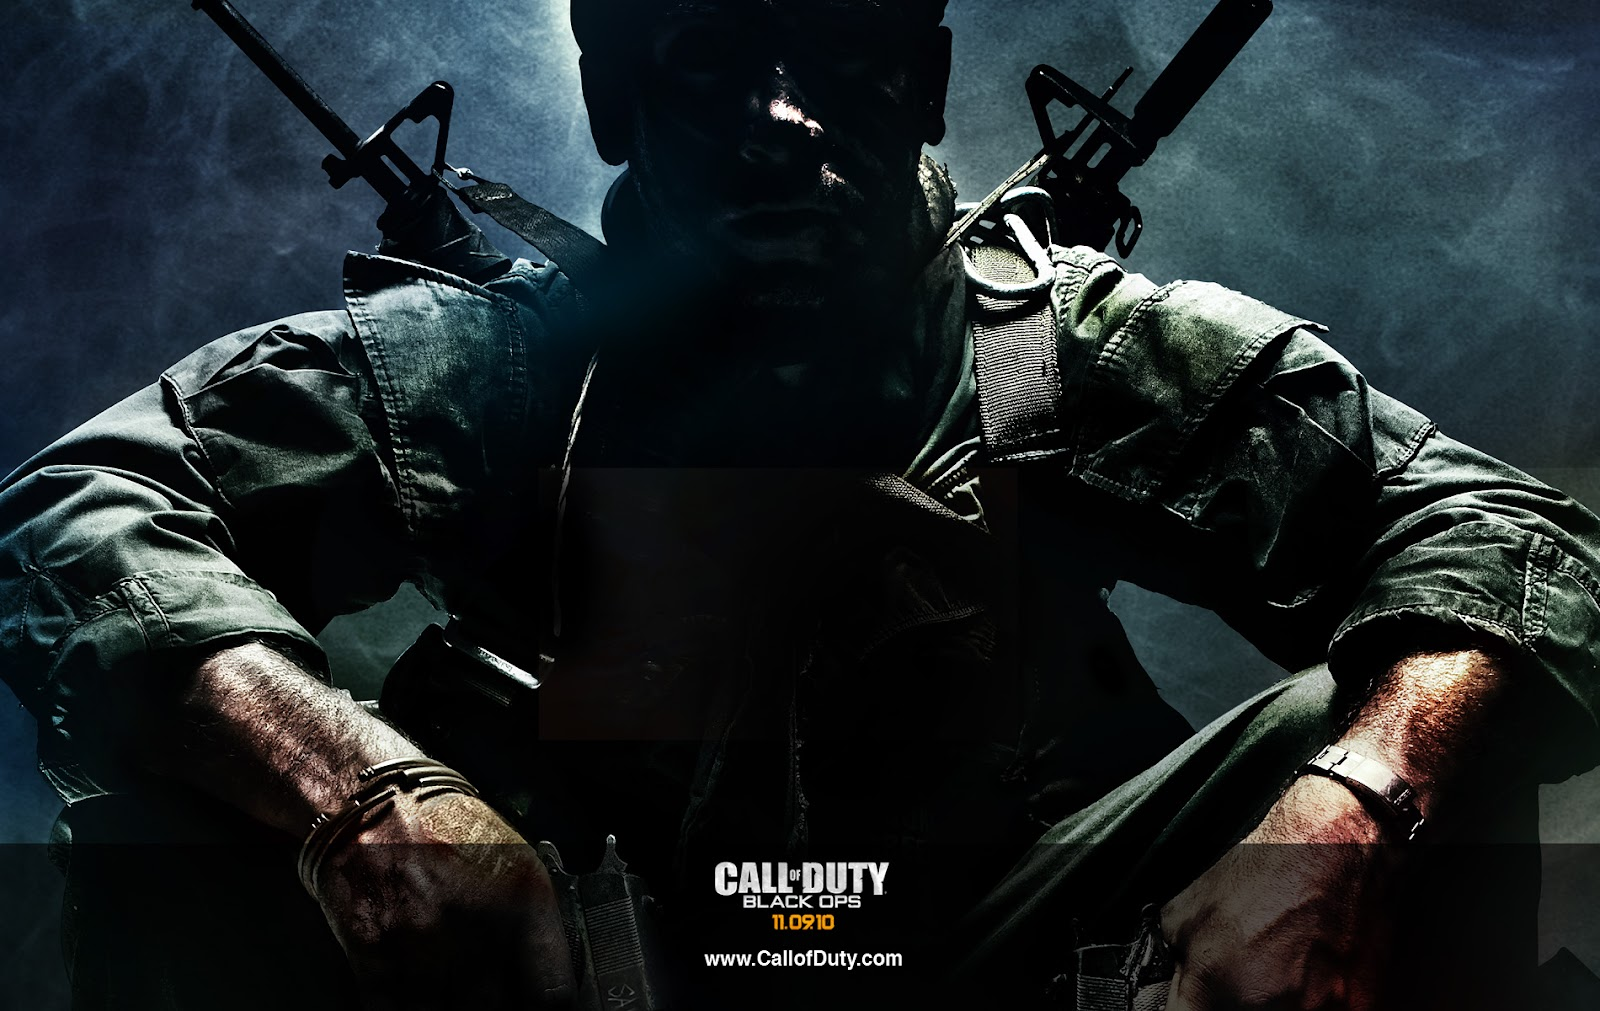 http://4.bp.blogspot.com/-_tSf0hKfYUY/TY_0XJshgcI/AAAAAAAAECI/fWPm3uqxk-I/s1600/Call+of+Duty+7+Black+ops+darkman+wallpaper.jpg